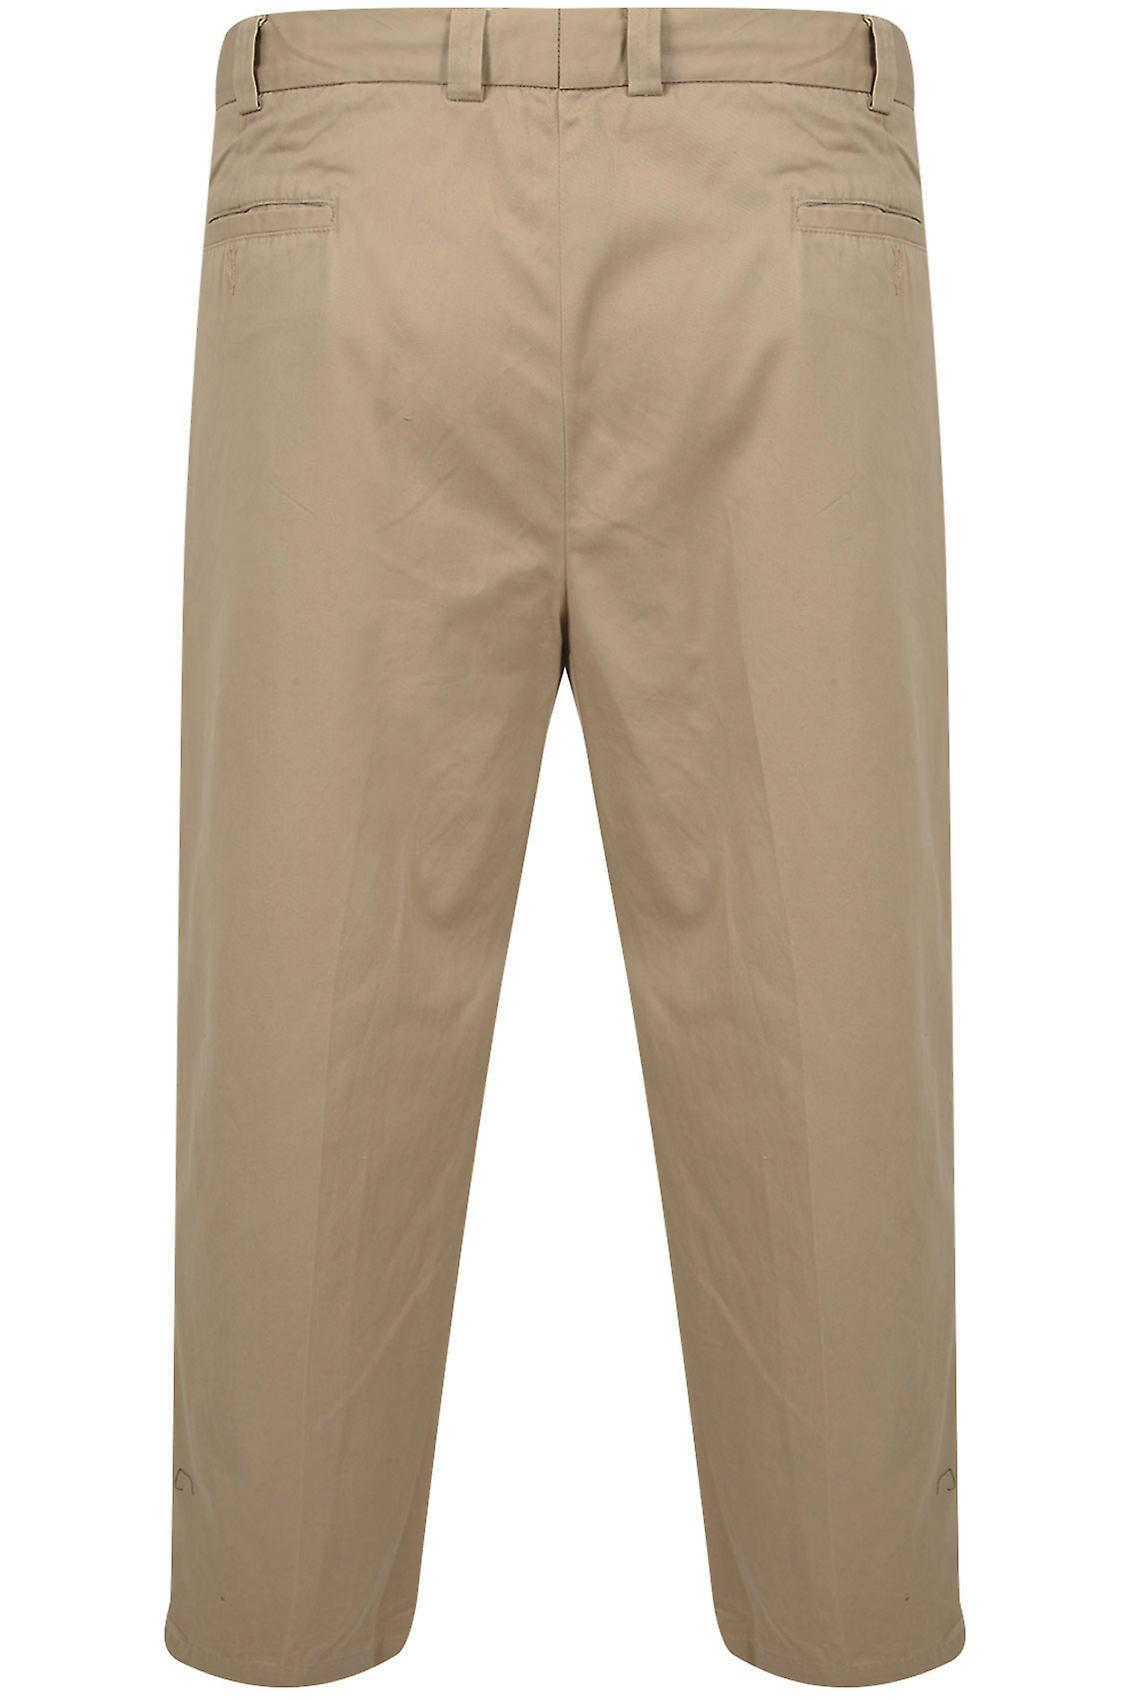 Beige Stretch Waist Chino Trousers With Pleats